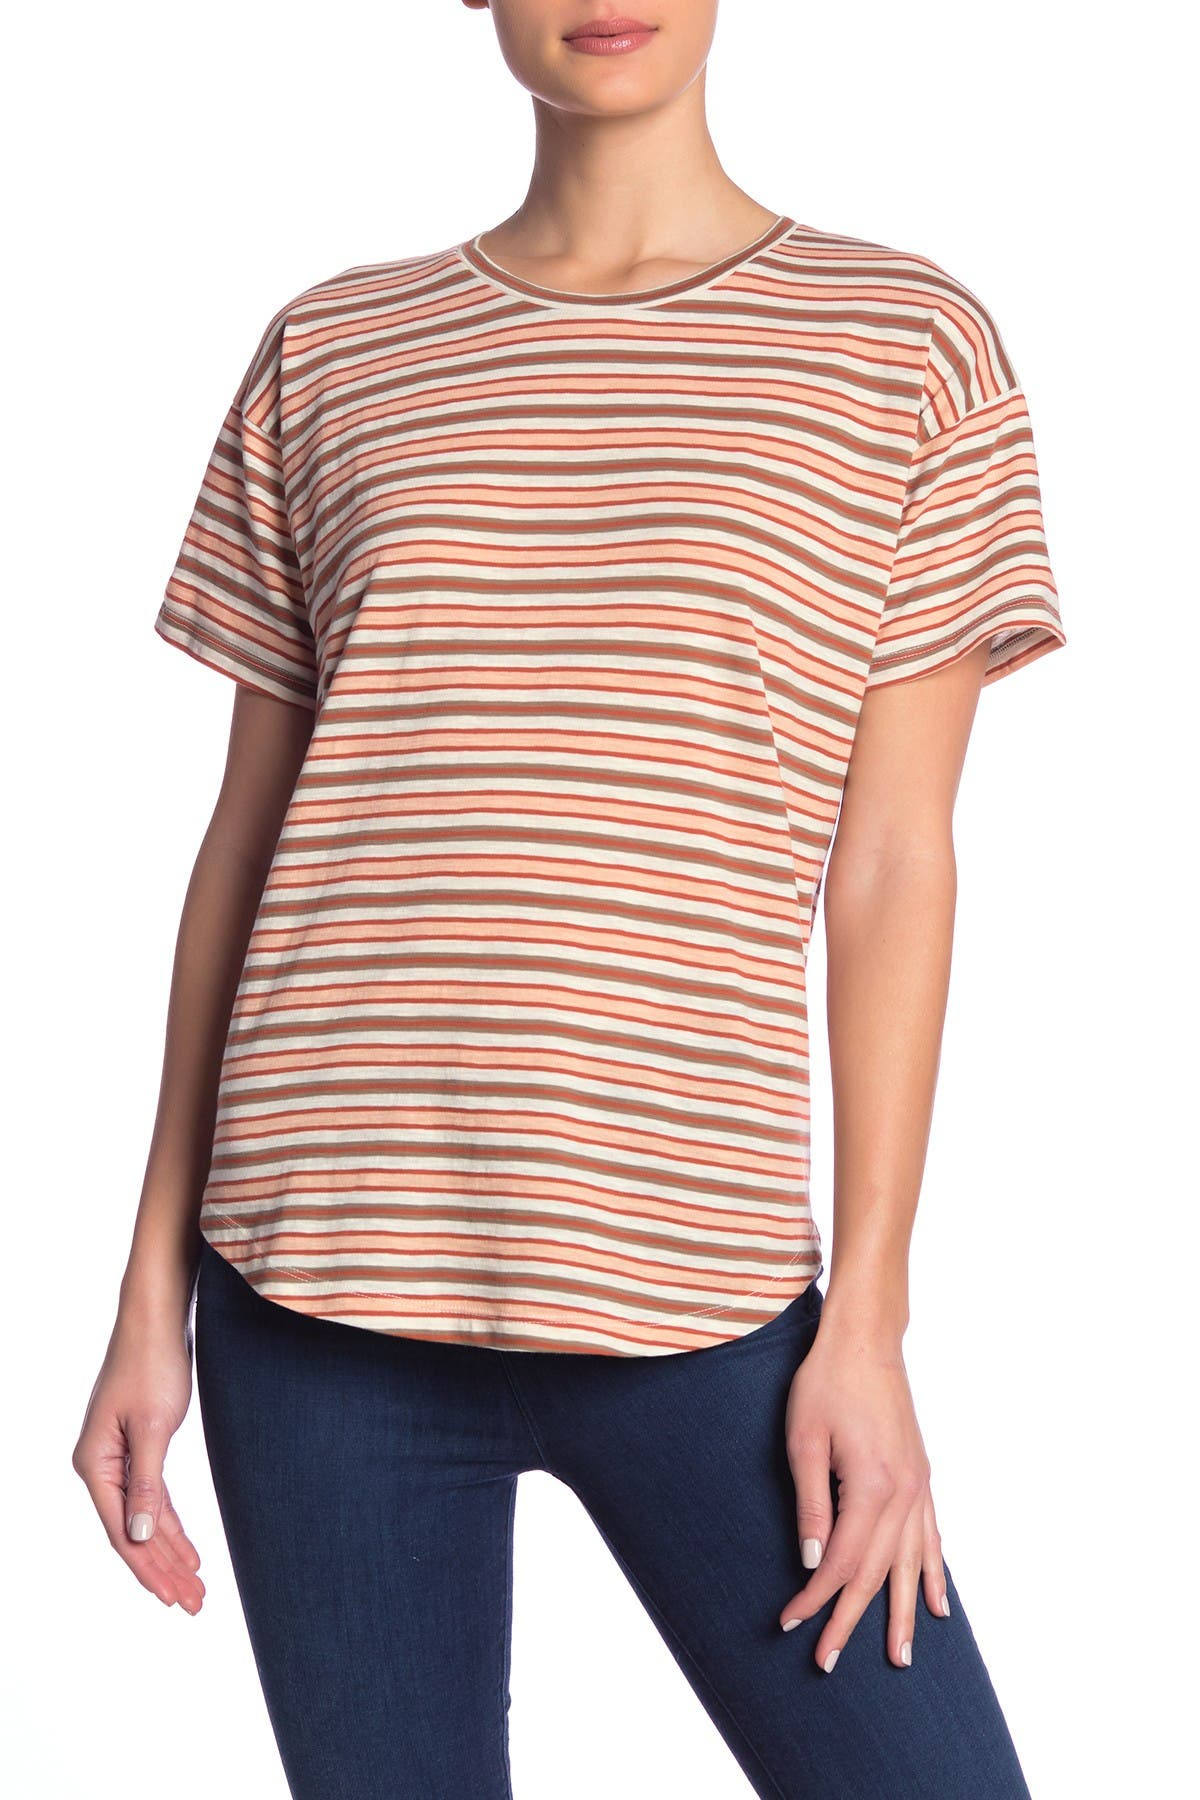 Image of Madewell Striped Short Sleeve Crew Neck T-Shirt